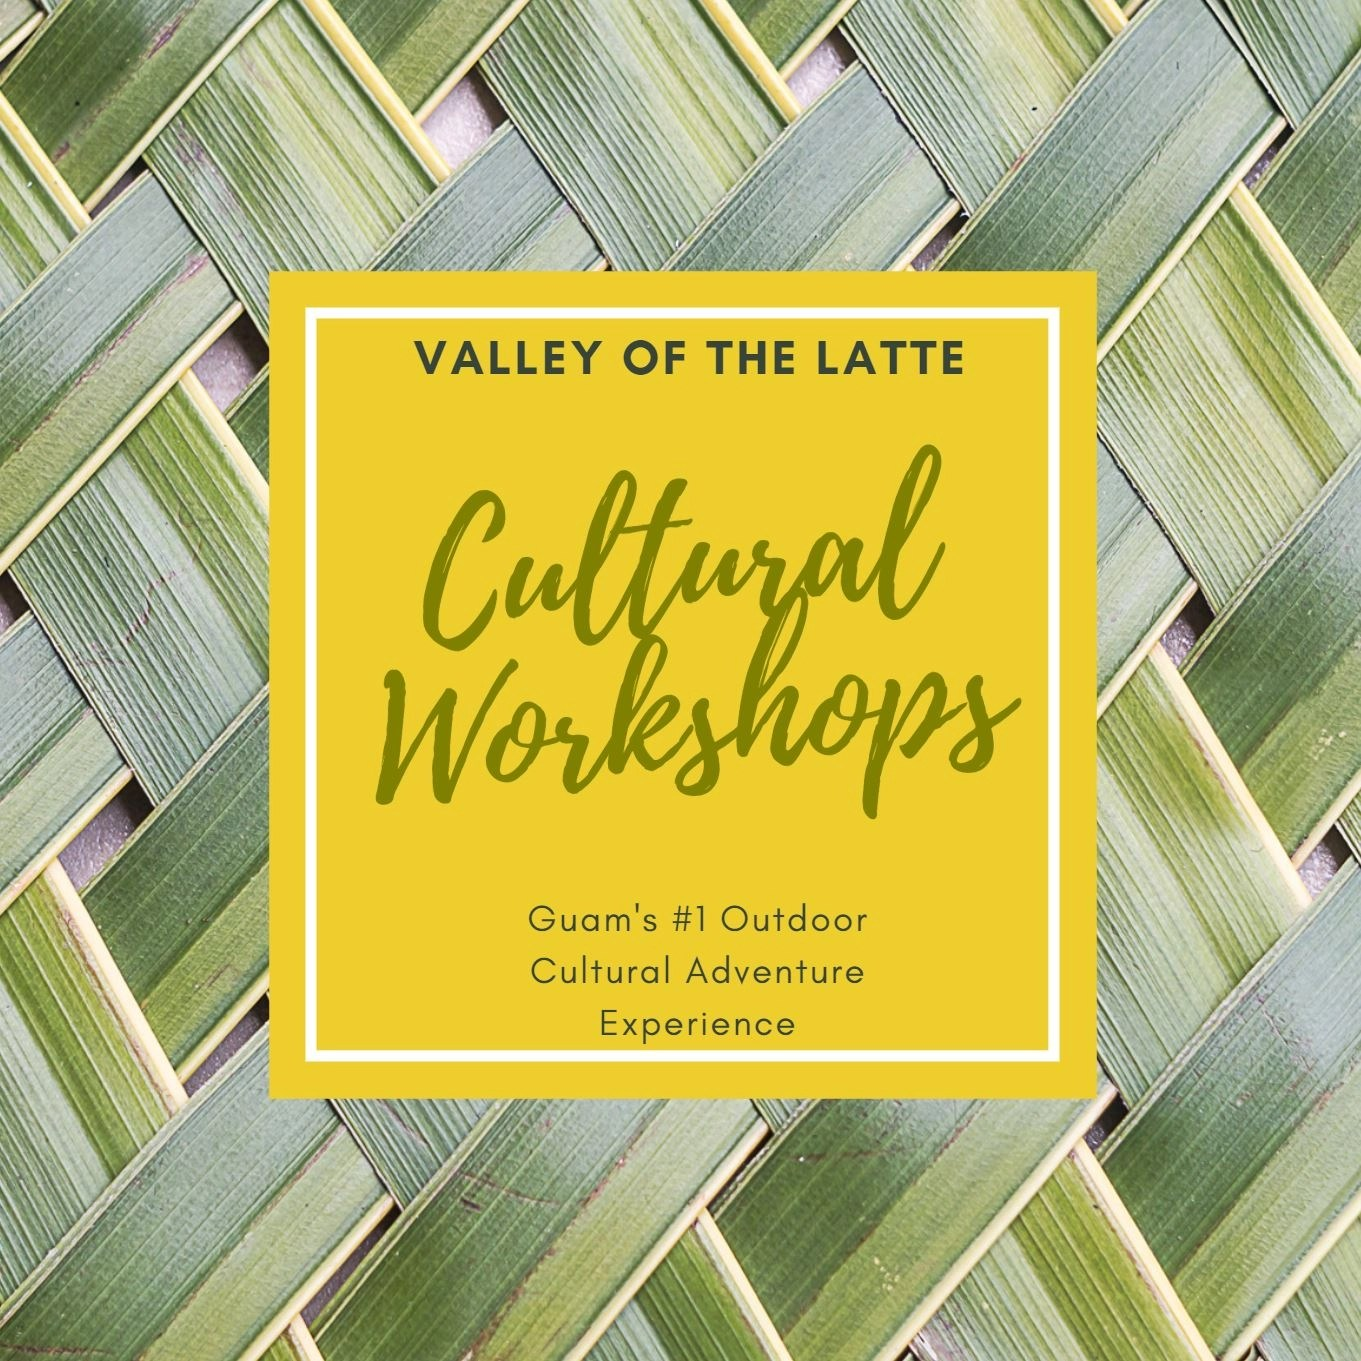 Valley of the Latte weaving workshop february 27th